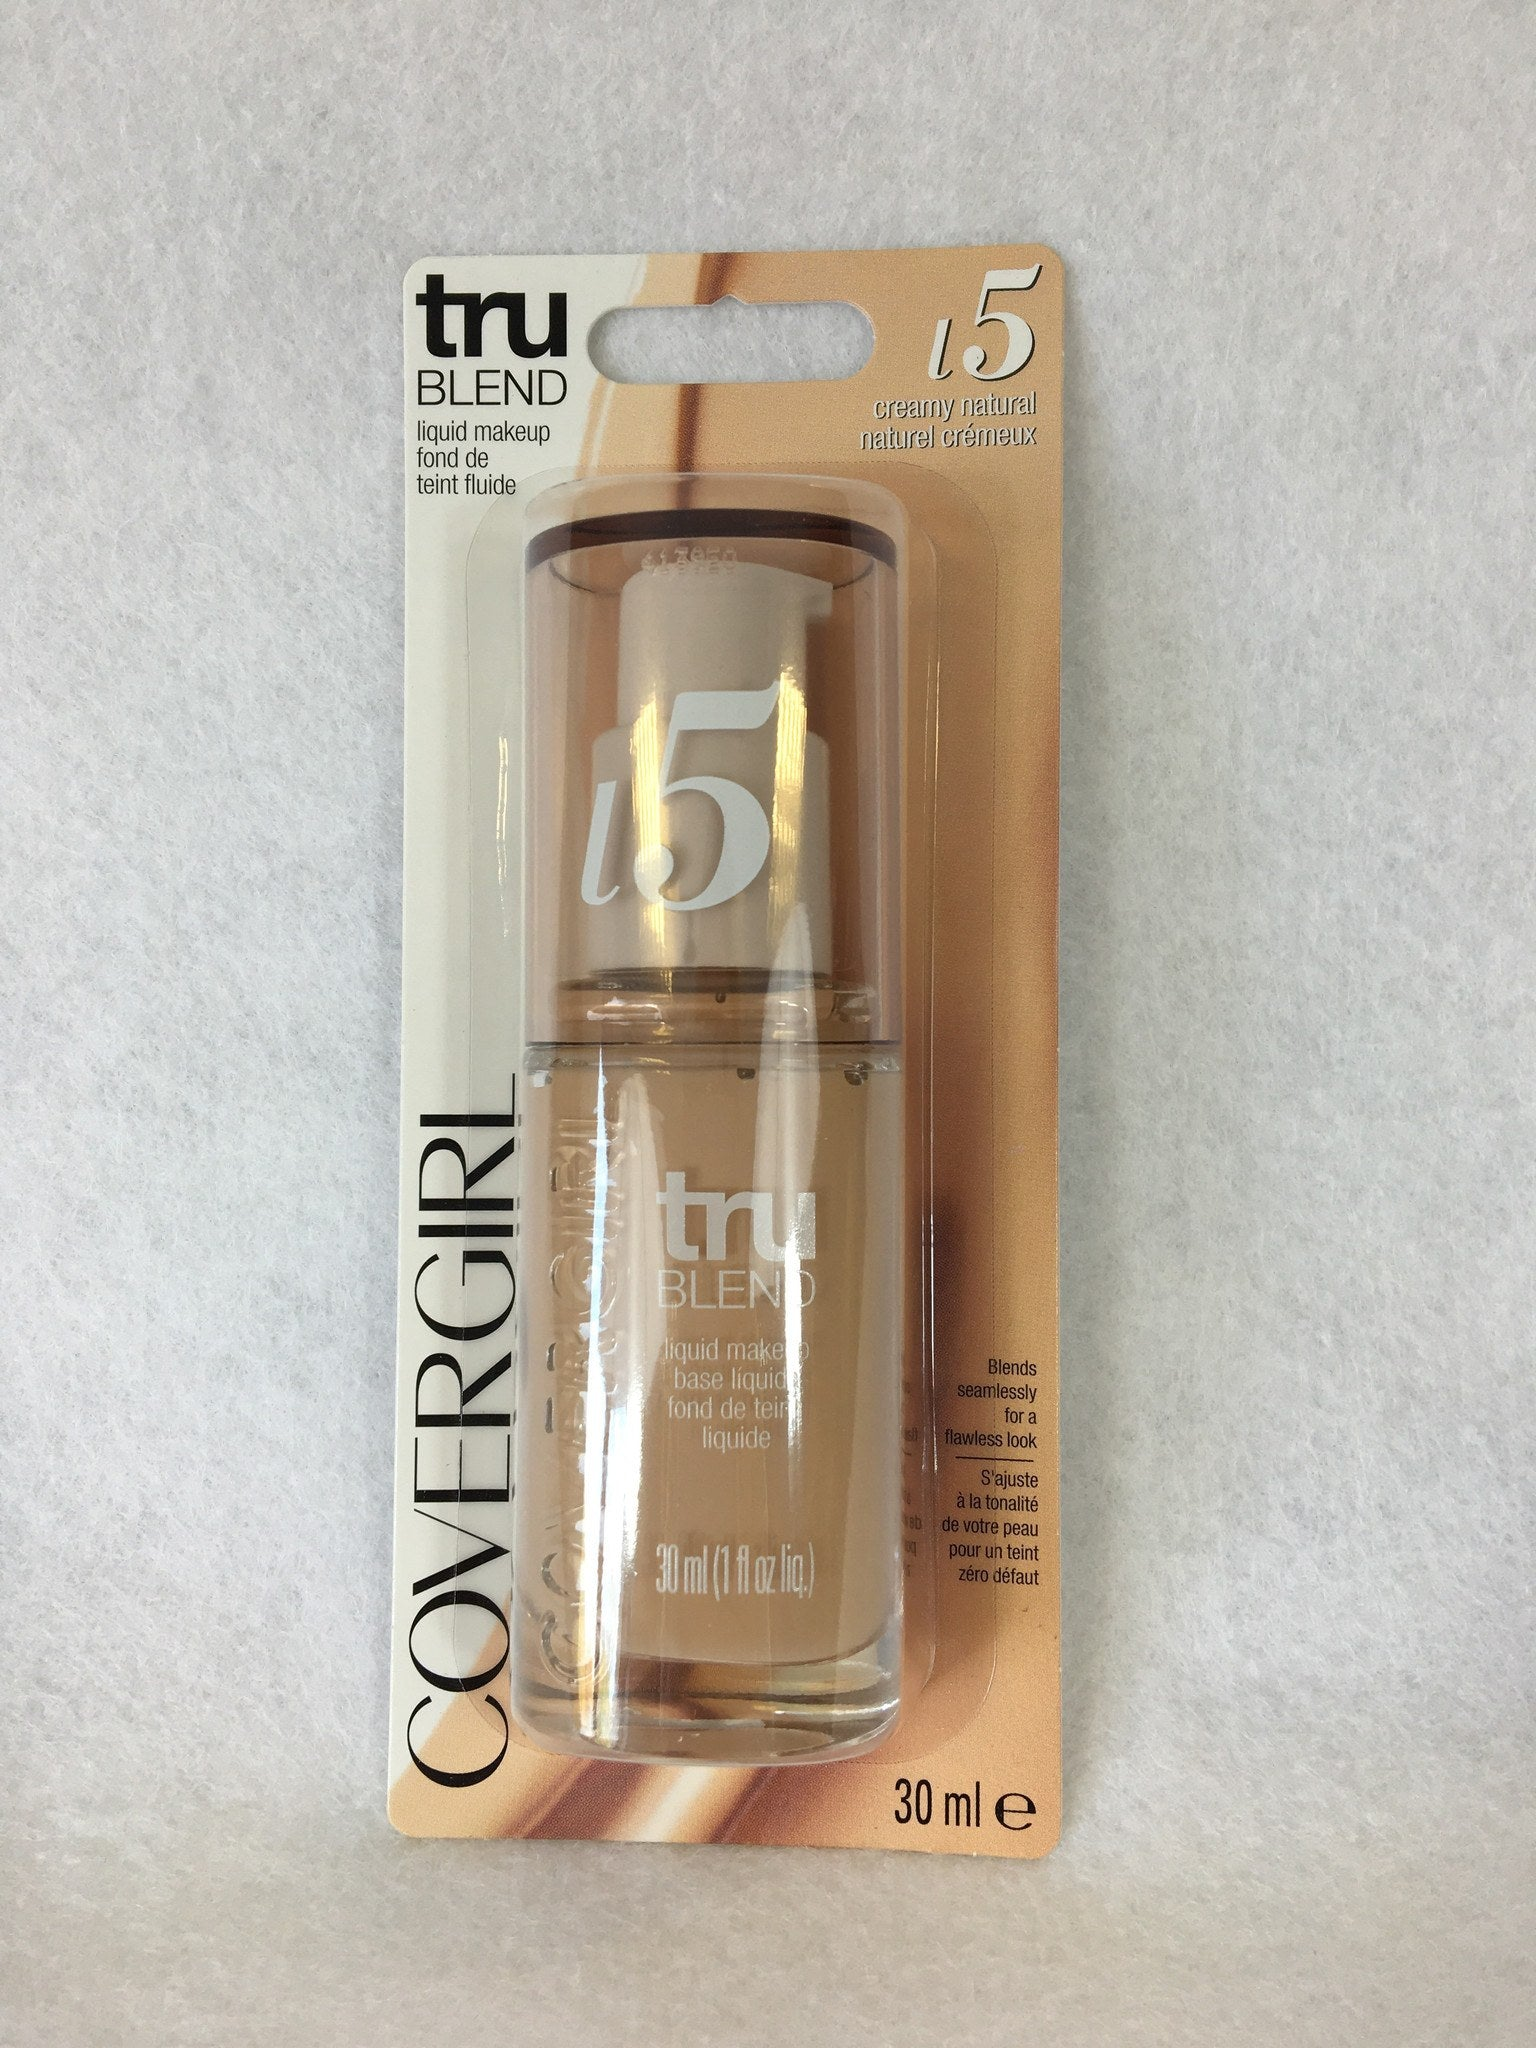 Covergirl Tru Blend Foundation Creamy Natural x 3 (£2.25 each) - Fizzy Peach Ltd